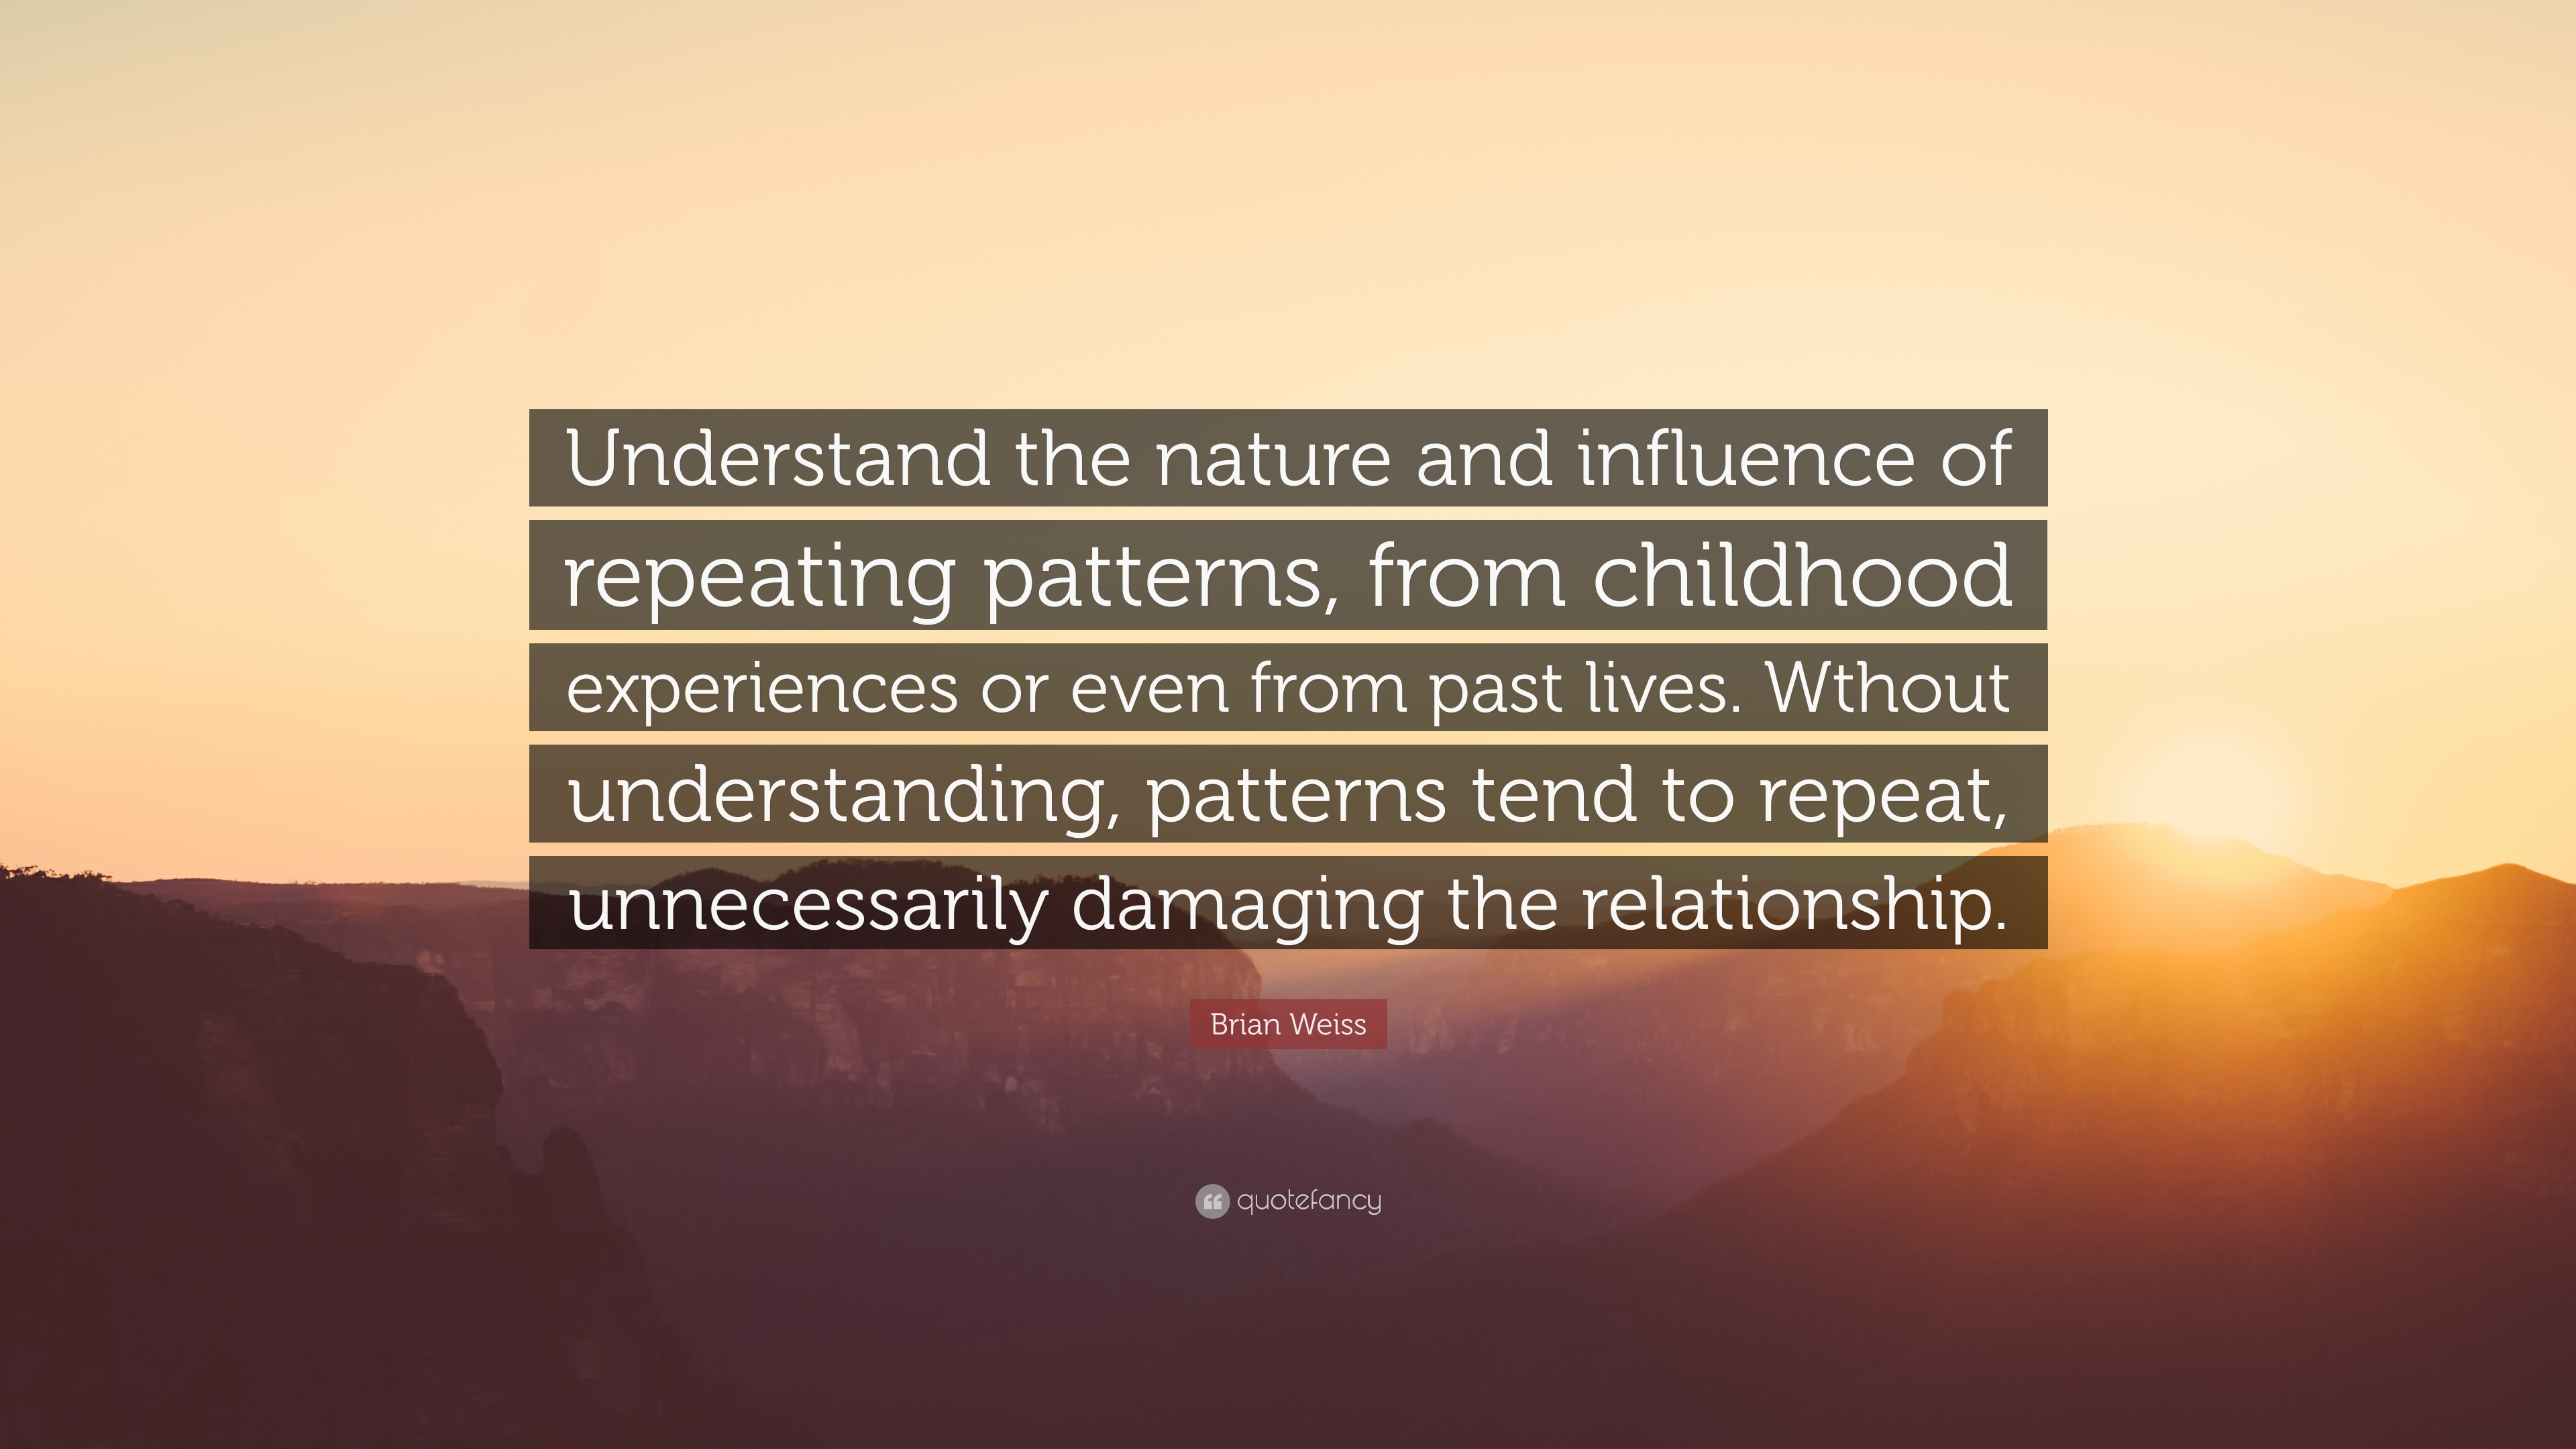 Brian Weiss Quote: Understand the nature and influence of